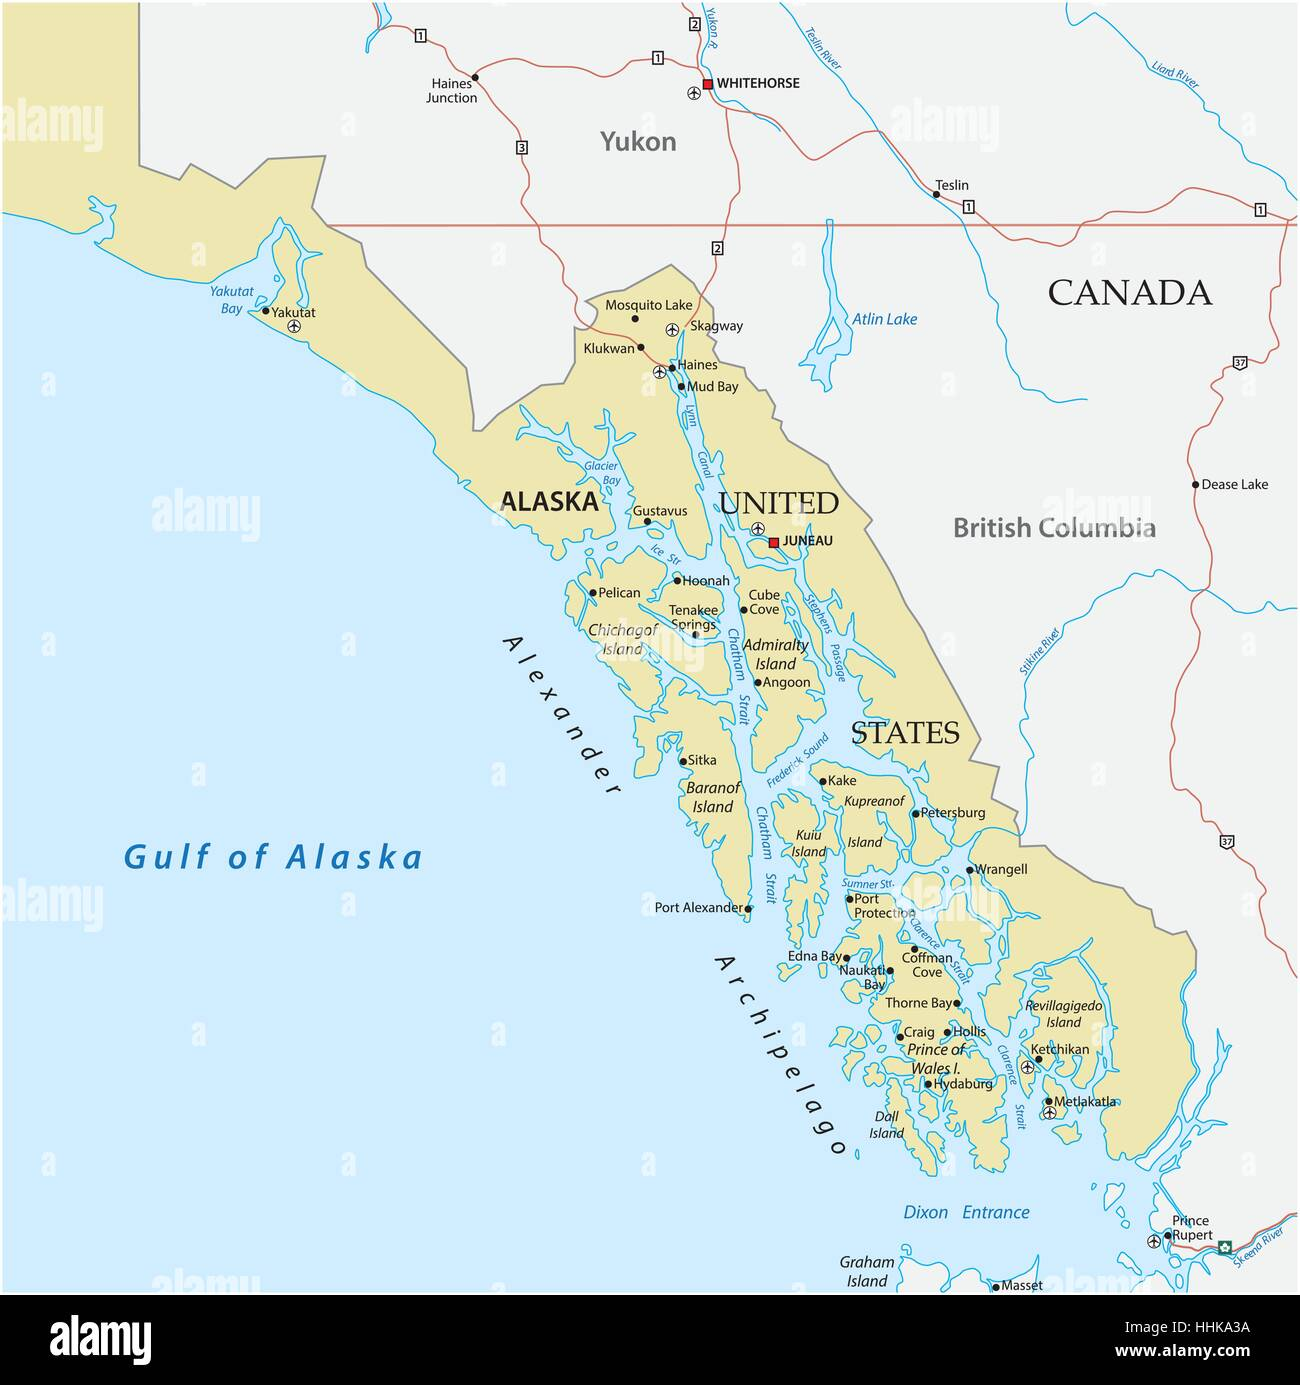 Map of panhandle in the united states alaska alexander map of panhandle in the united states alaska alexander archipelago sciox Images